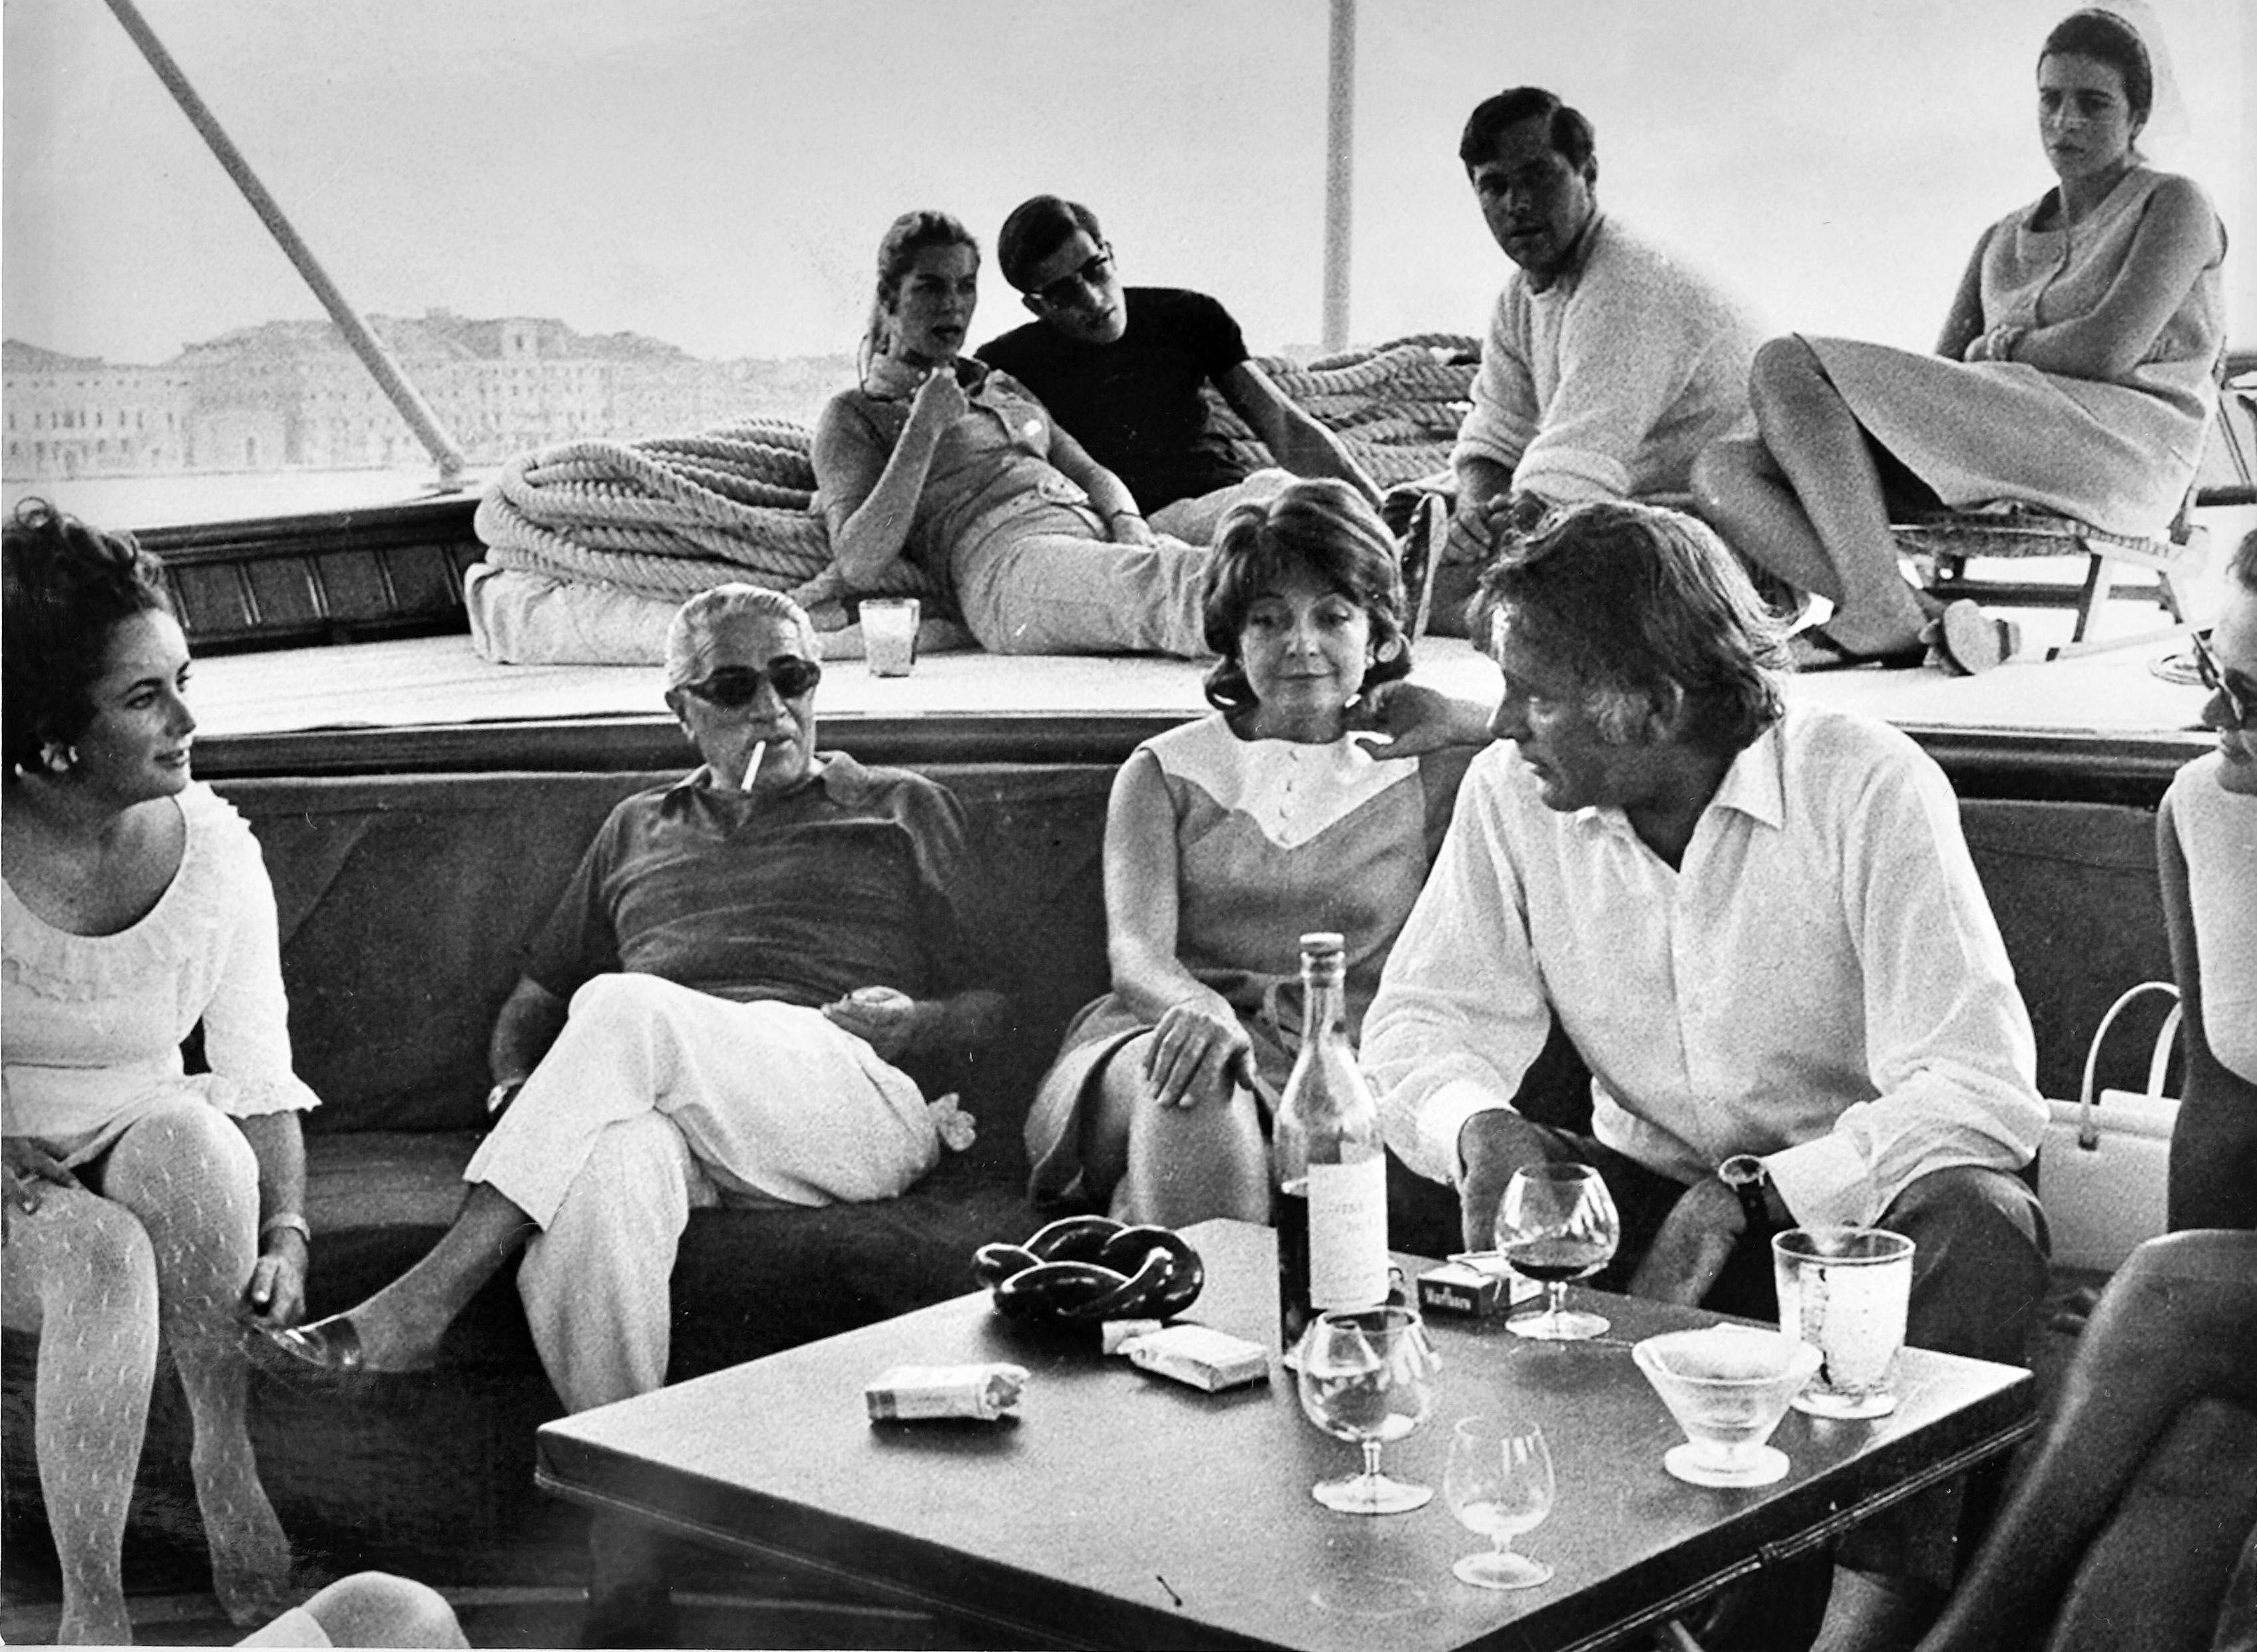 Christina O Yacht Historical Photo By Stef Bravin Aristotle Onassis Elizabeth Taylor Jackie Onassis